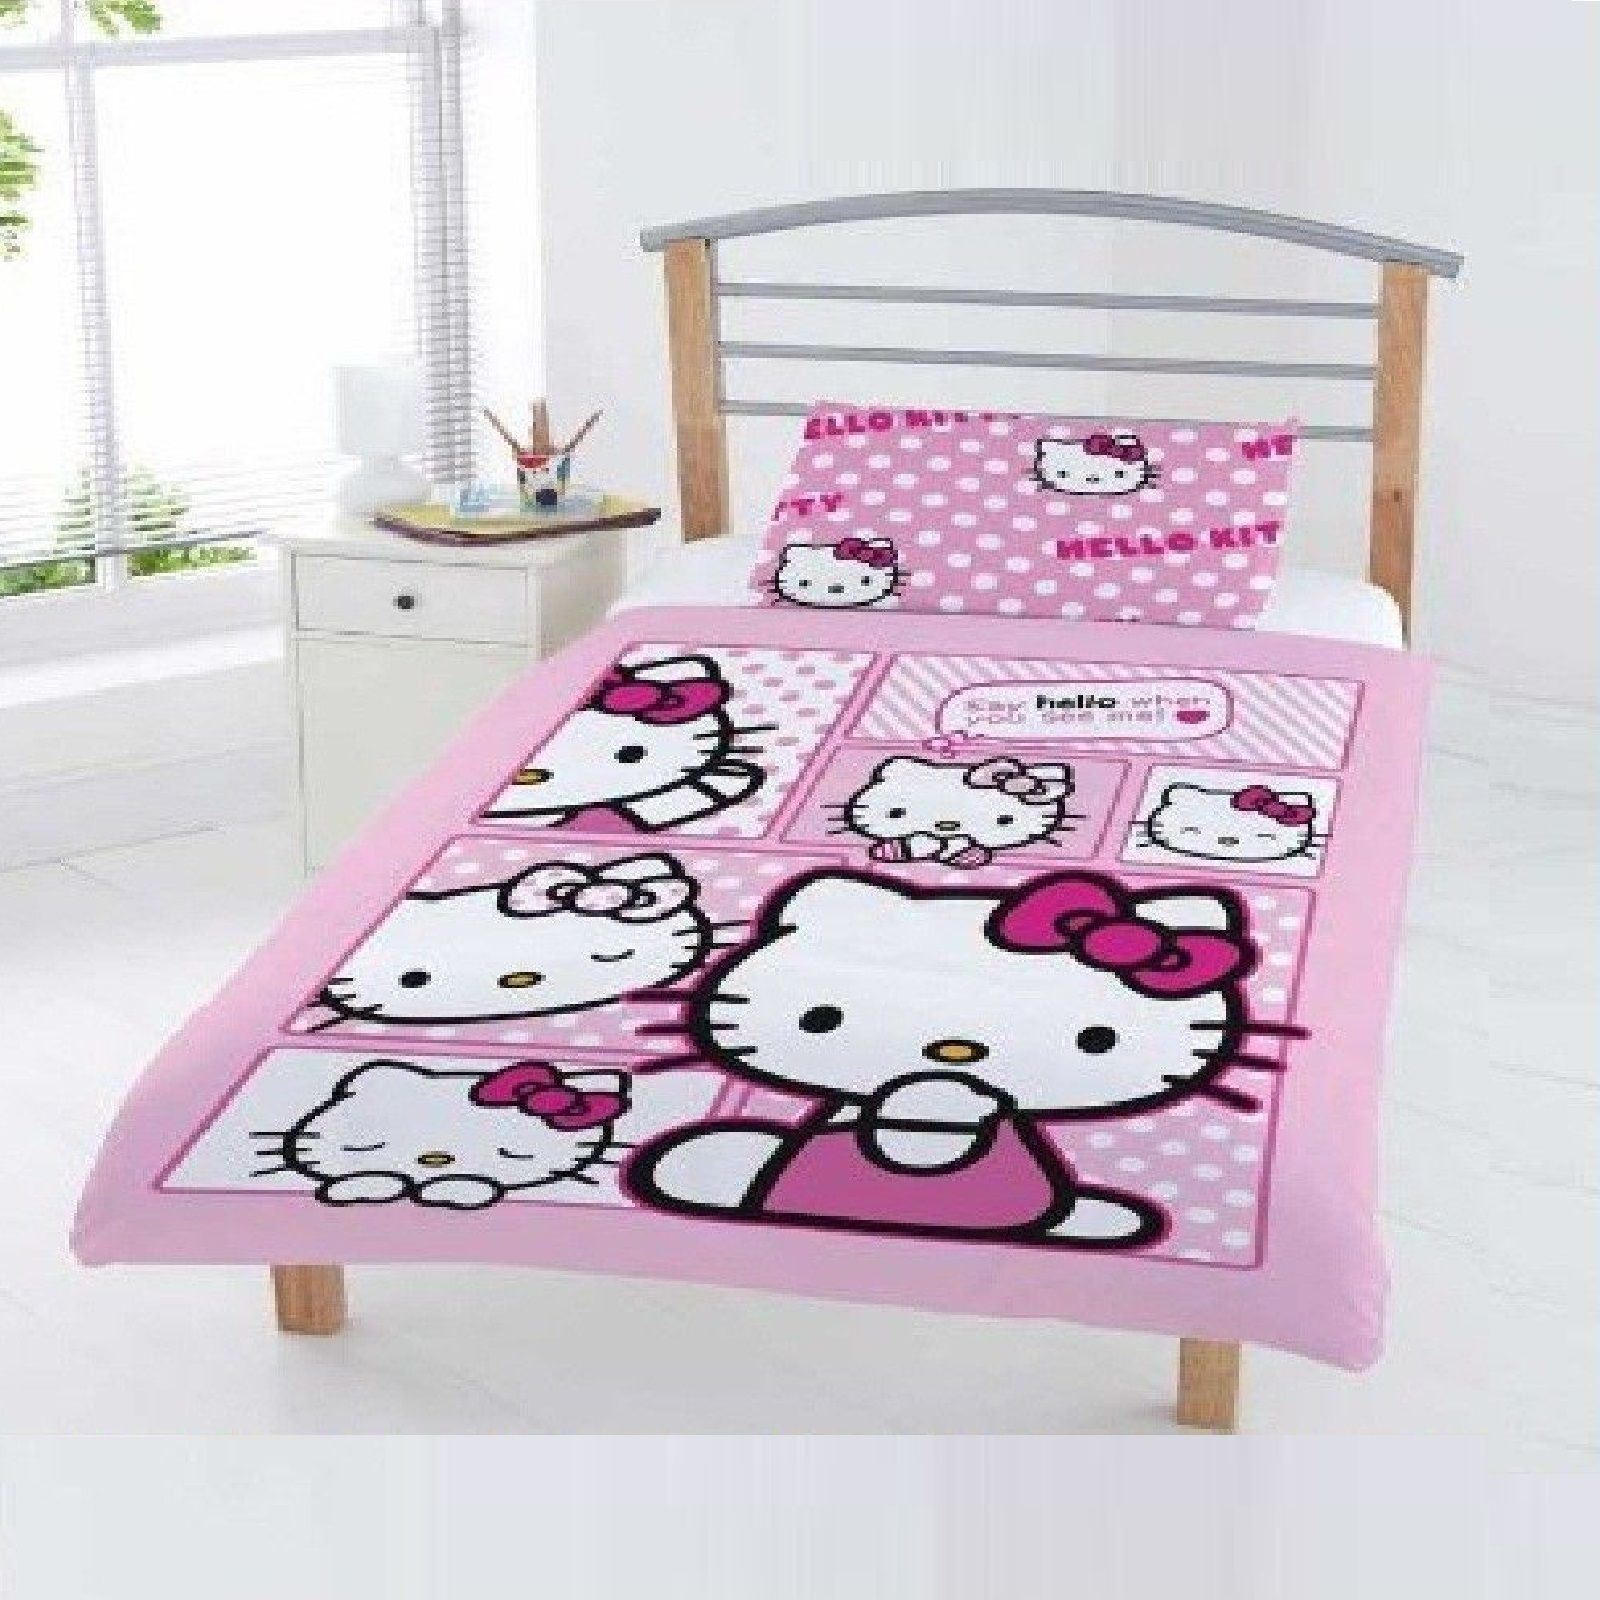 What Tog Quilt For Toddler Bed